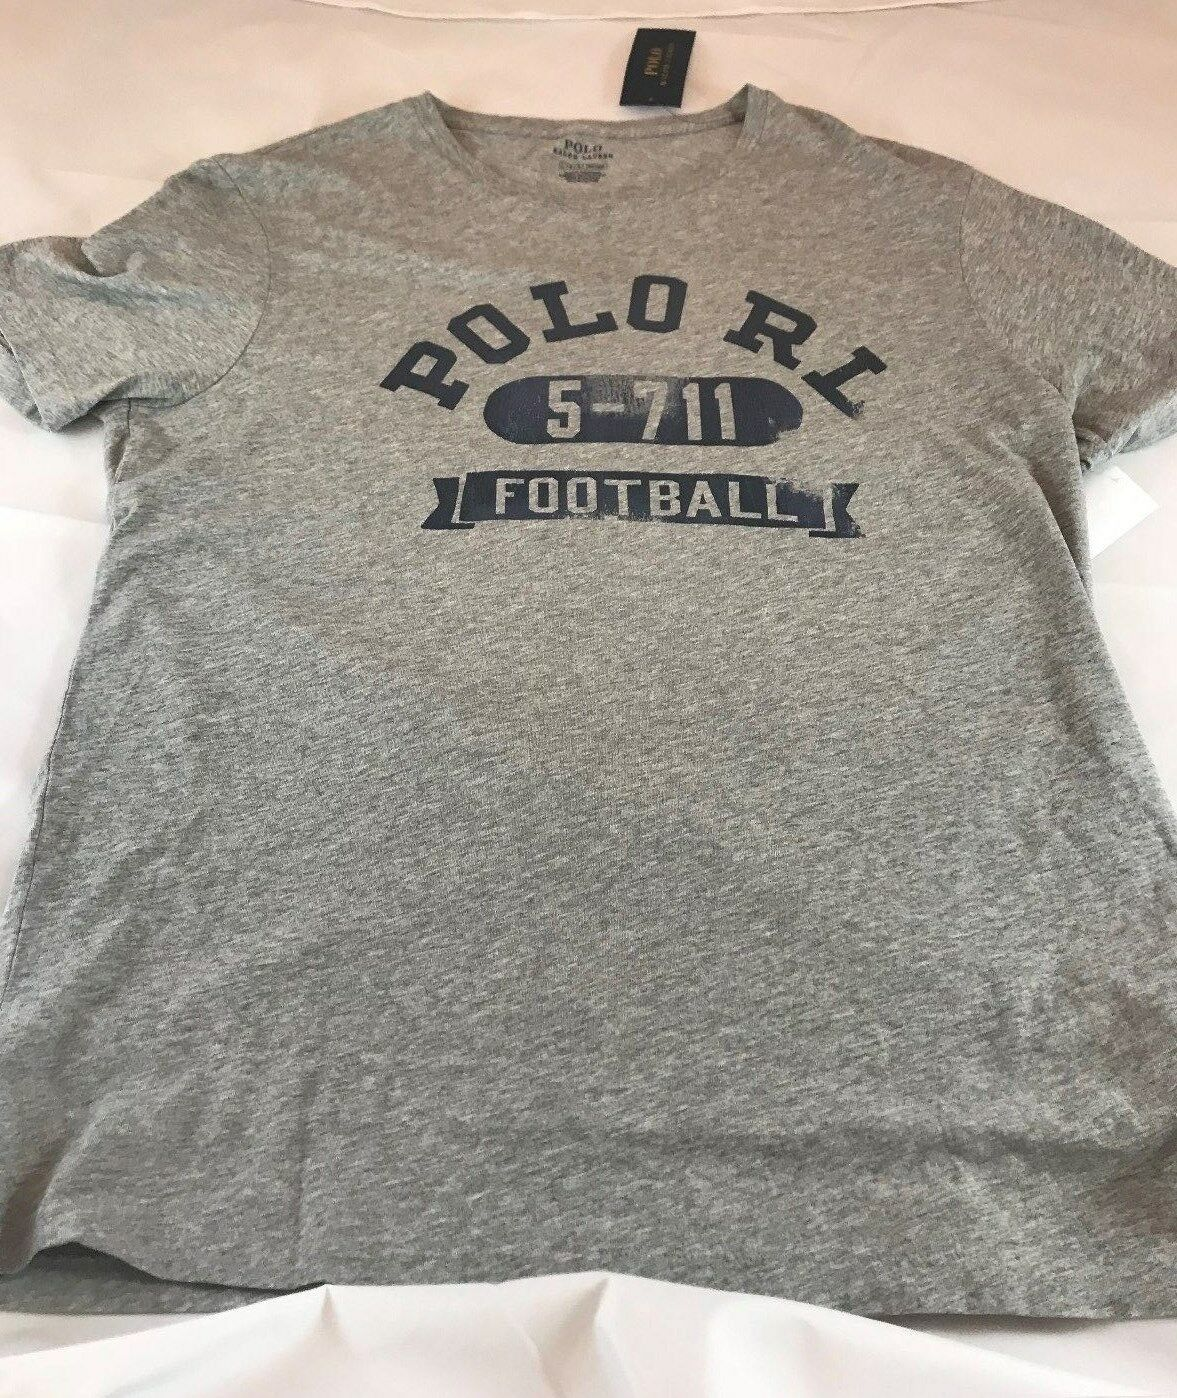 9d47343a191 Custom Football T Shirts Designs – EDGE Engineering and Consulting ...